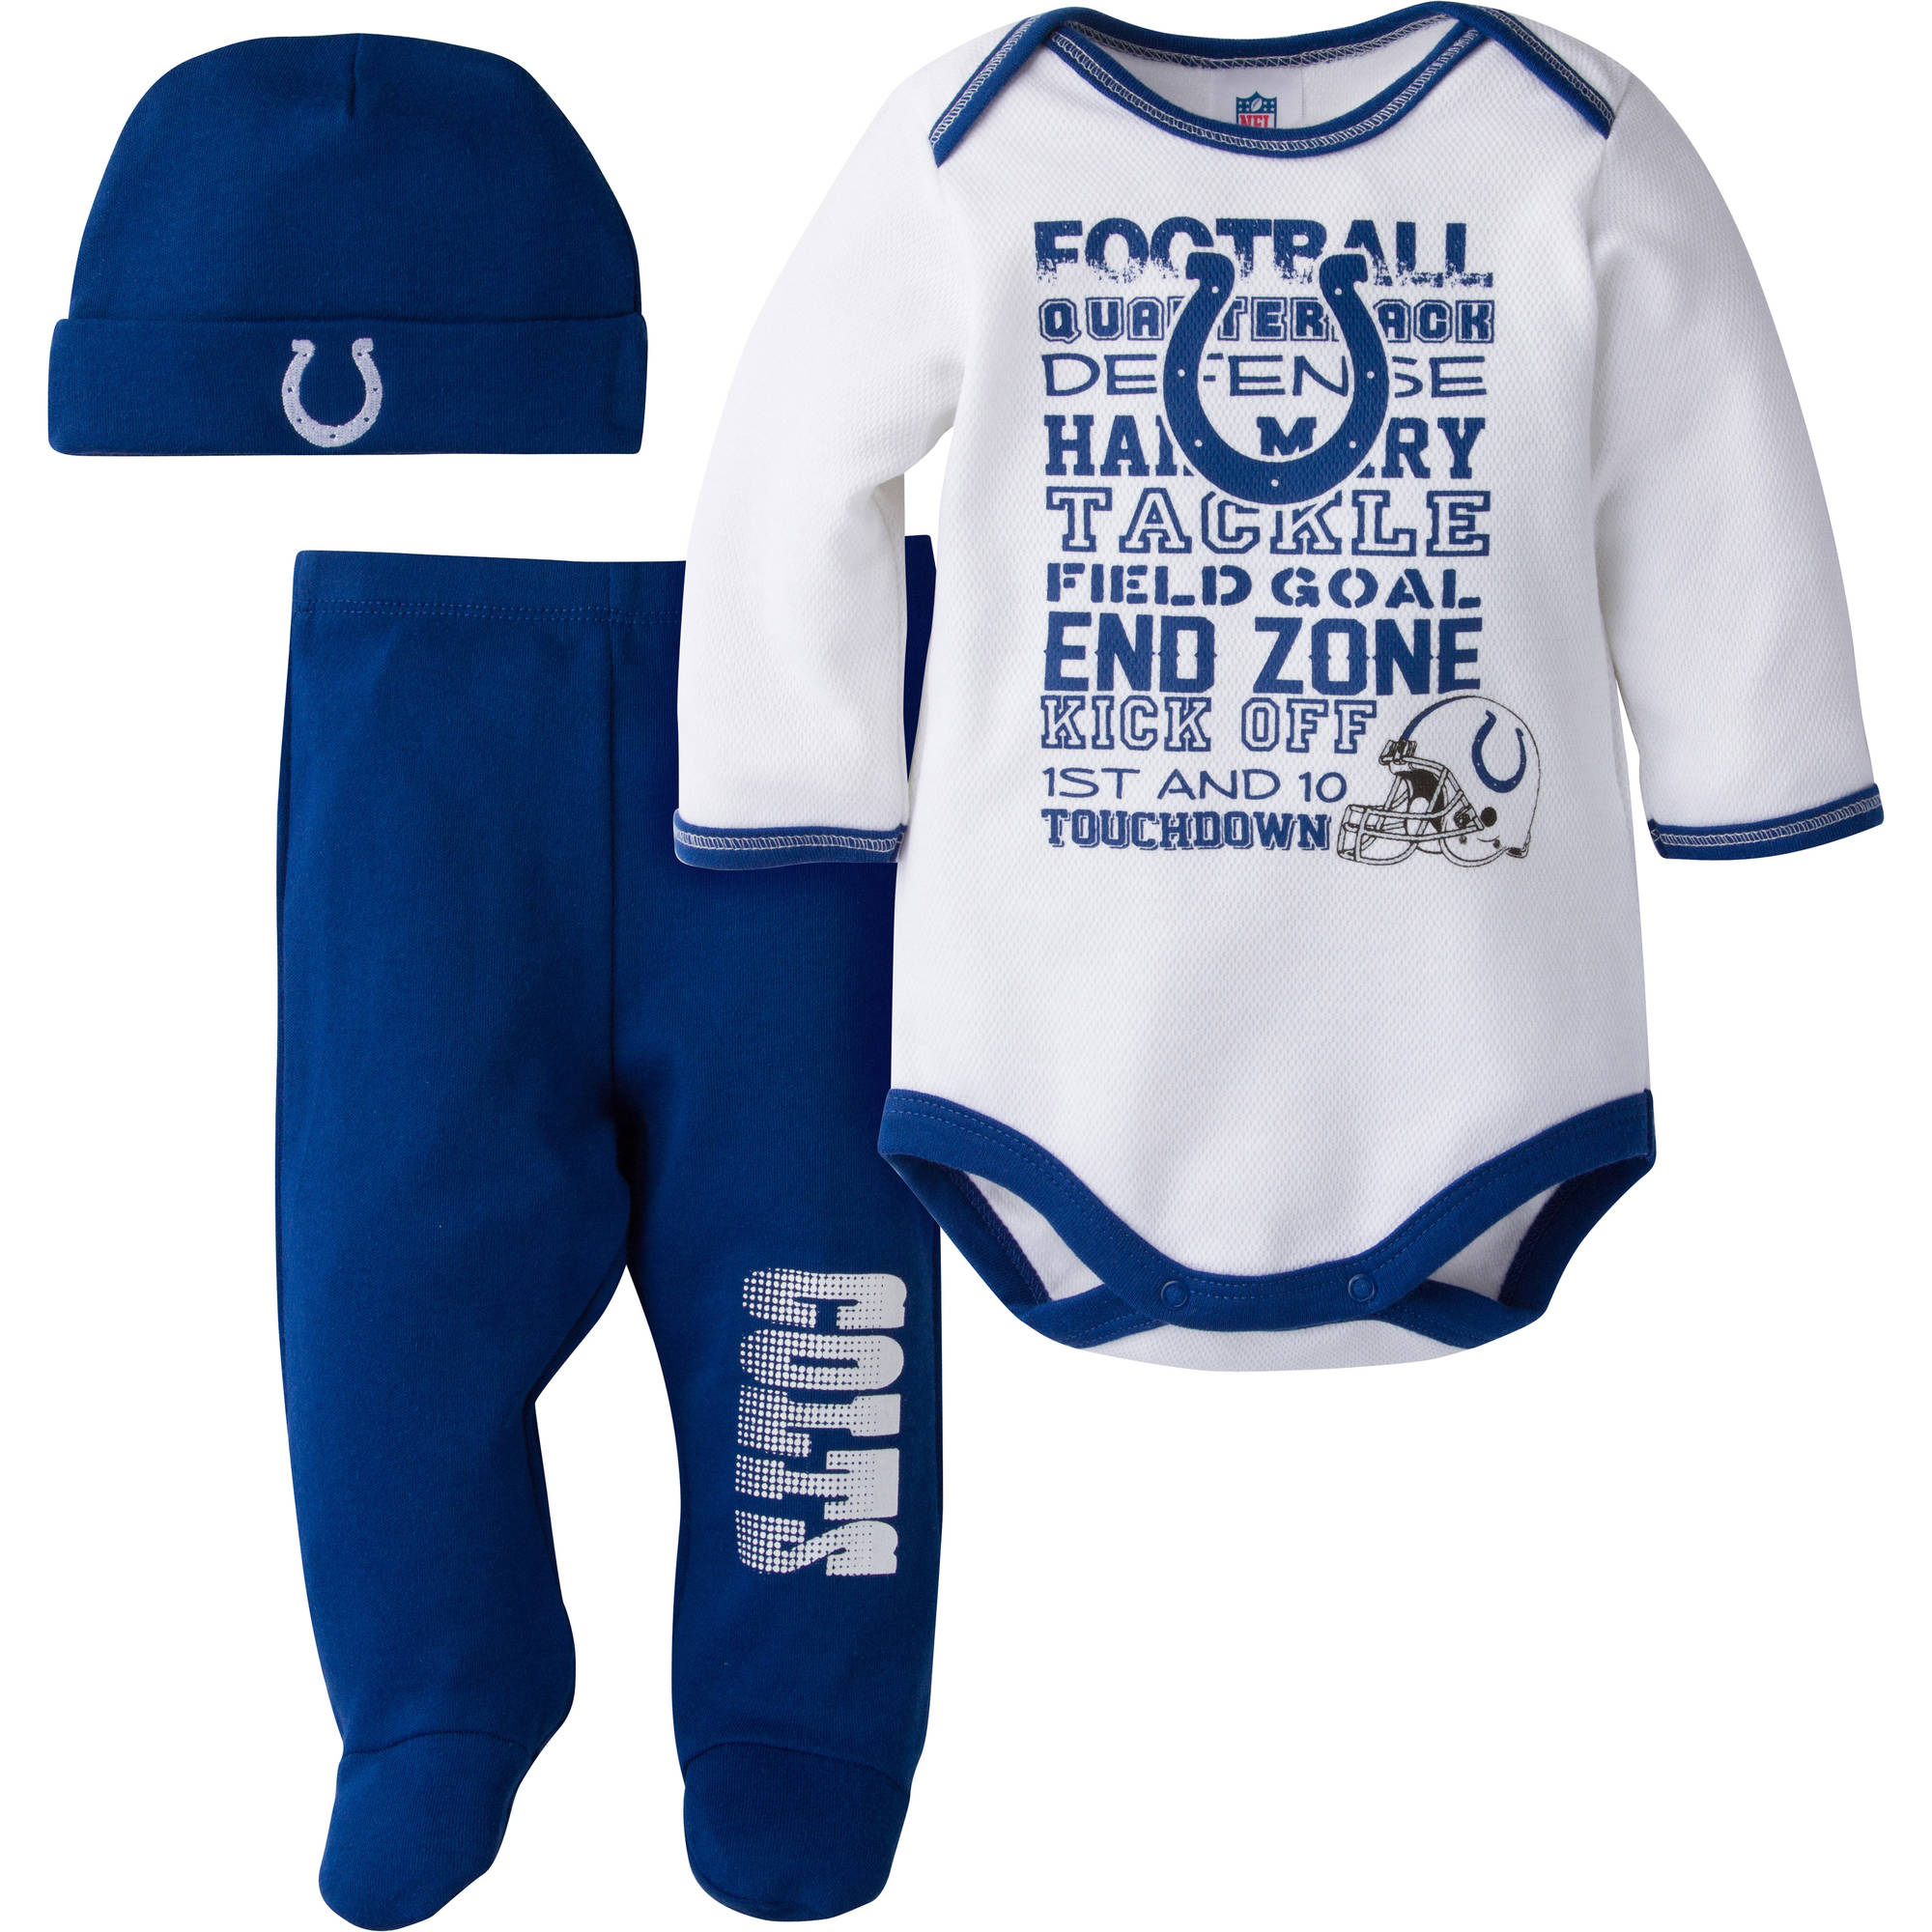 NFL Indianapolis Colts Baby Boys Bodysuit, Pant and Cap Outfit Set, 3-Piece